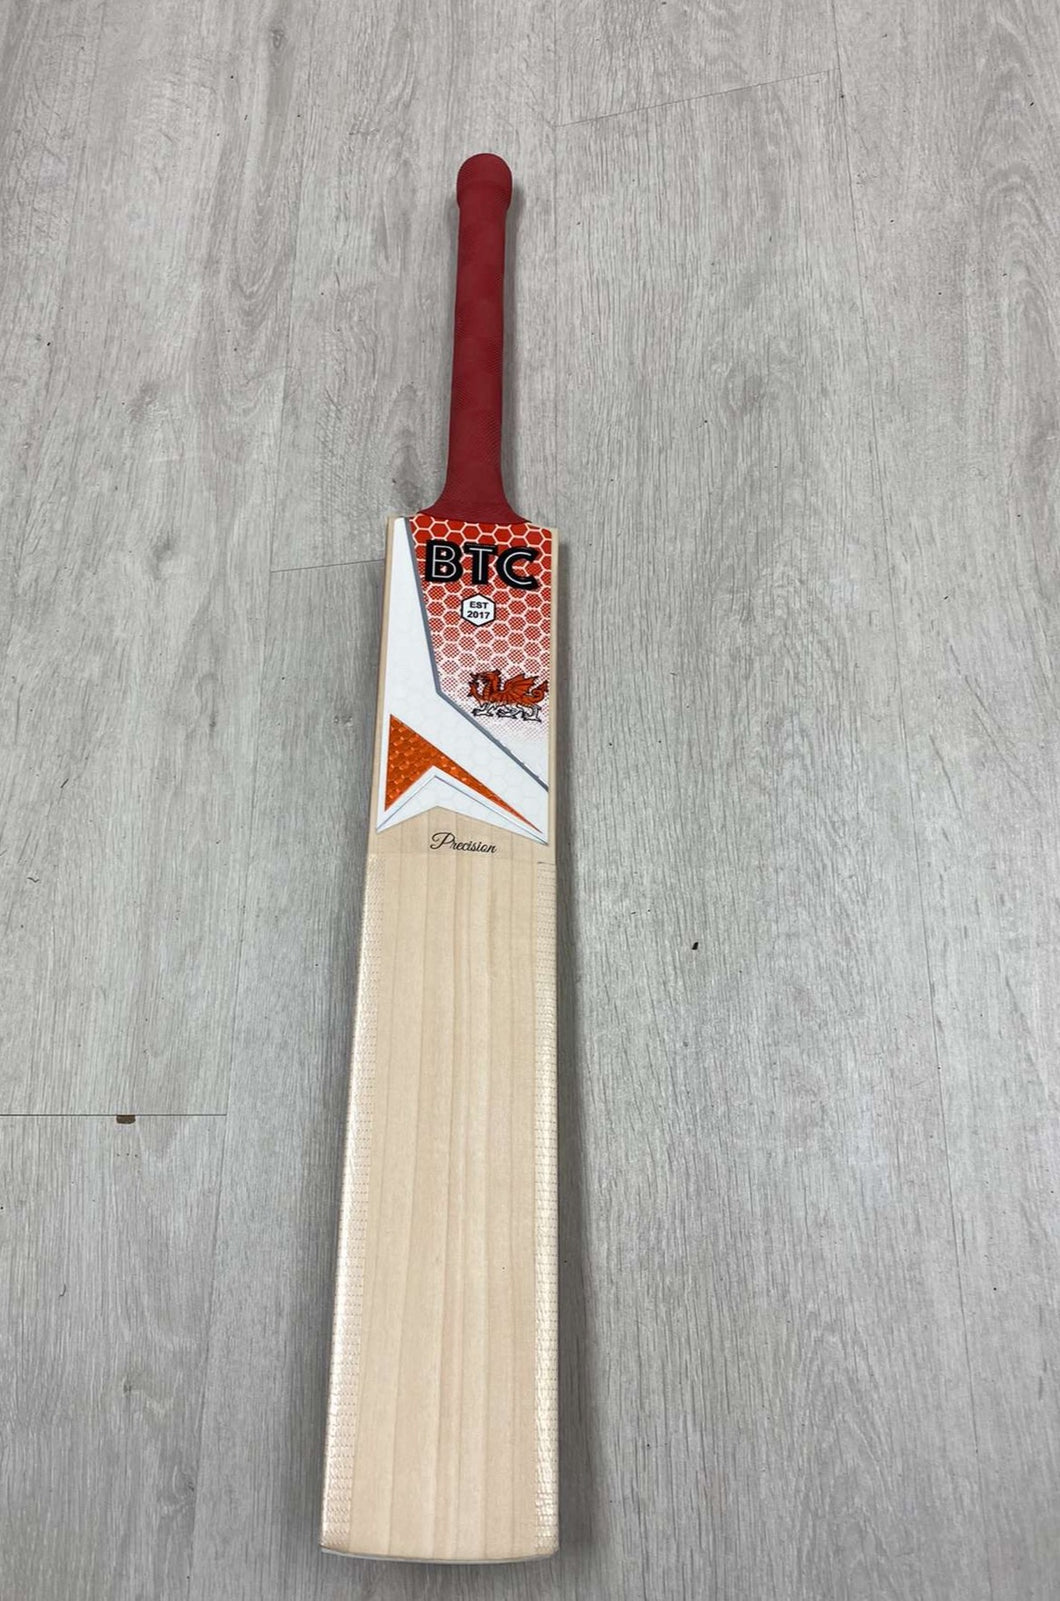 BTC Wales Precision Harrow Bat 1